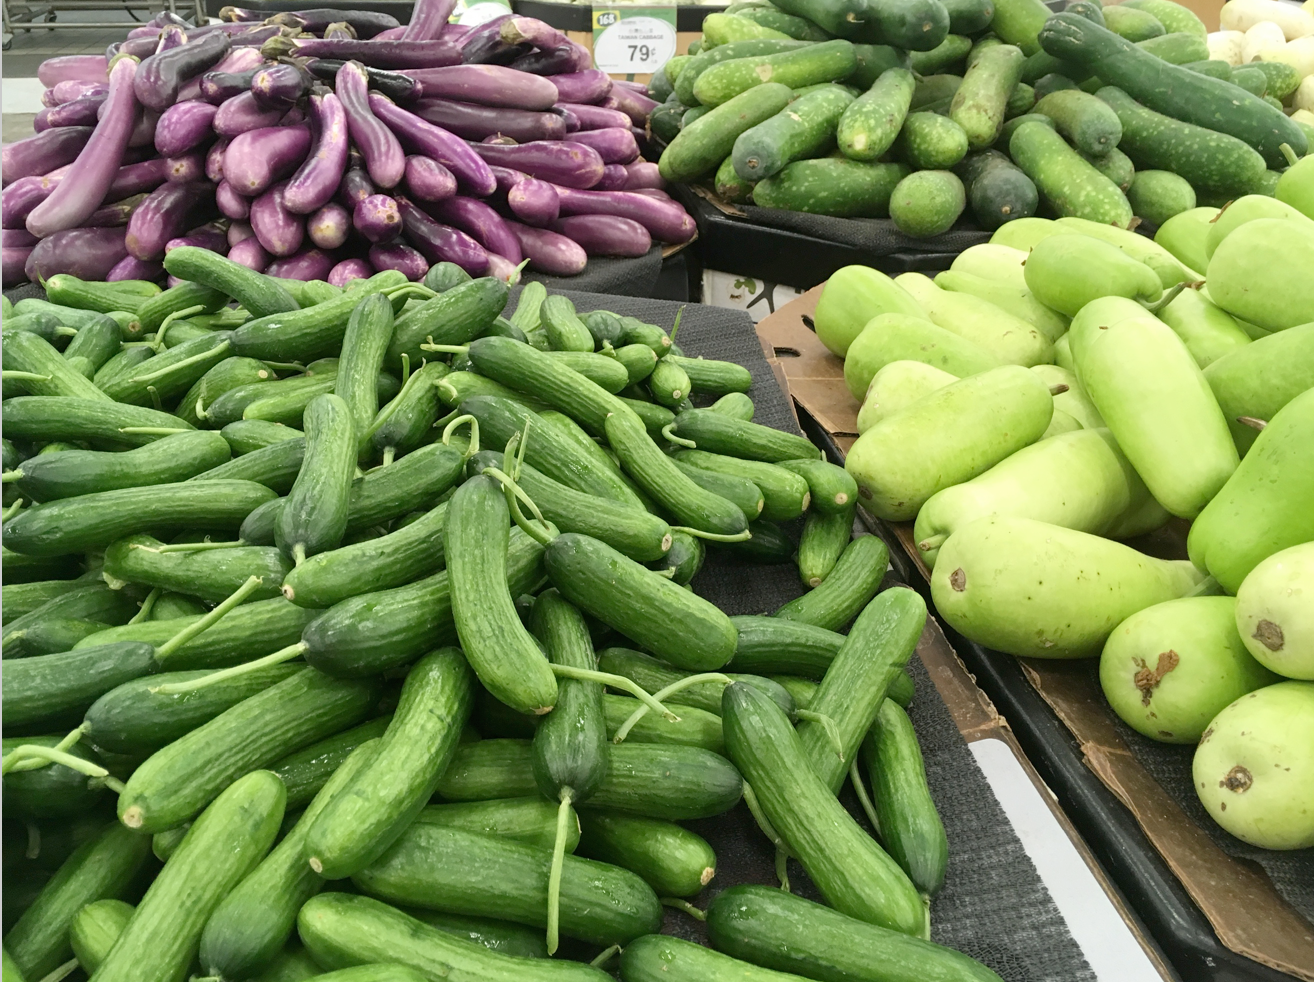 The beautiful vegetables at 168 are impossible to resist: cucumbers, Japanese eggplant, zucchini and bottle gourd.